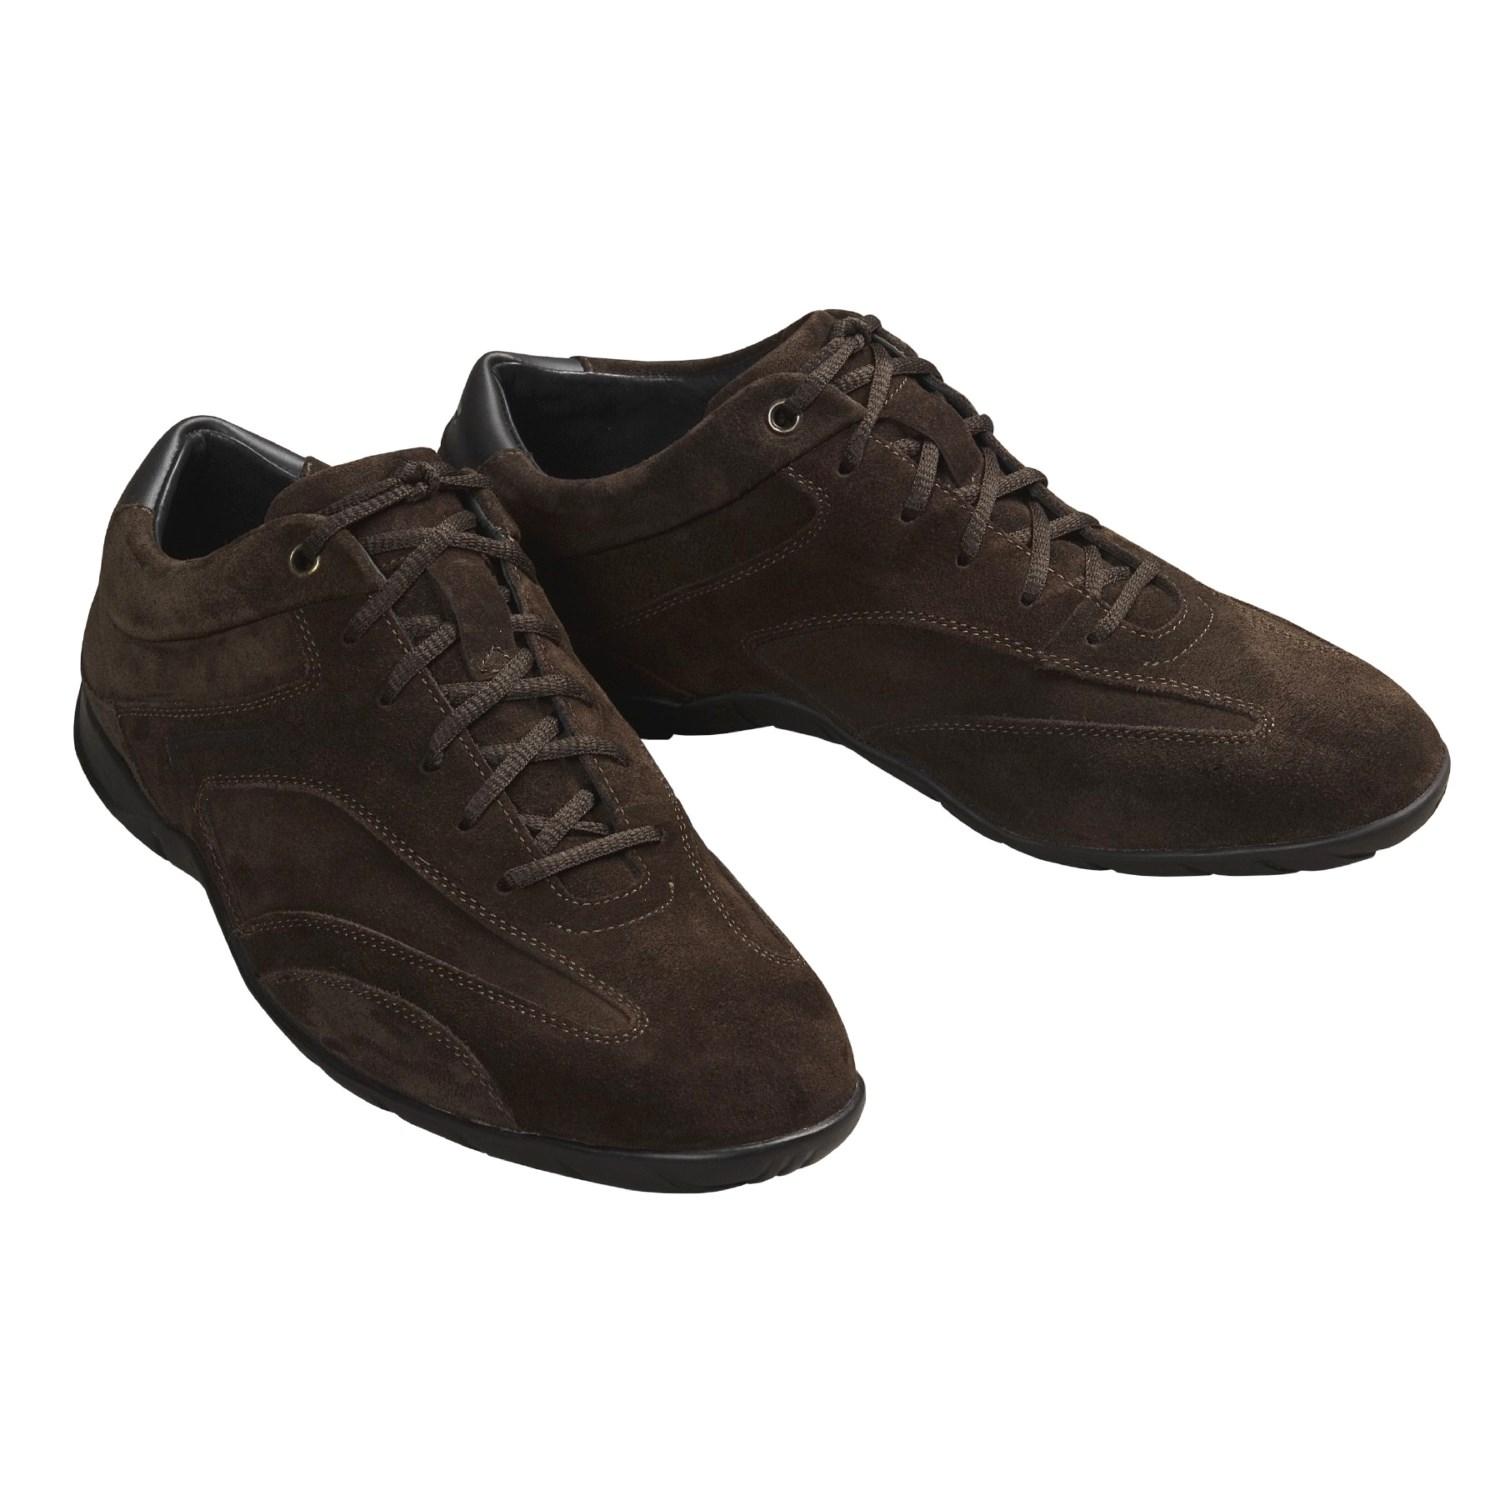 pirelli suede athletic dress shoes for 78430 save 64